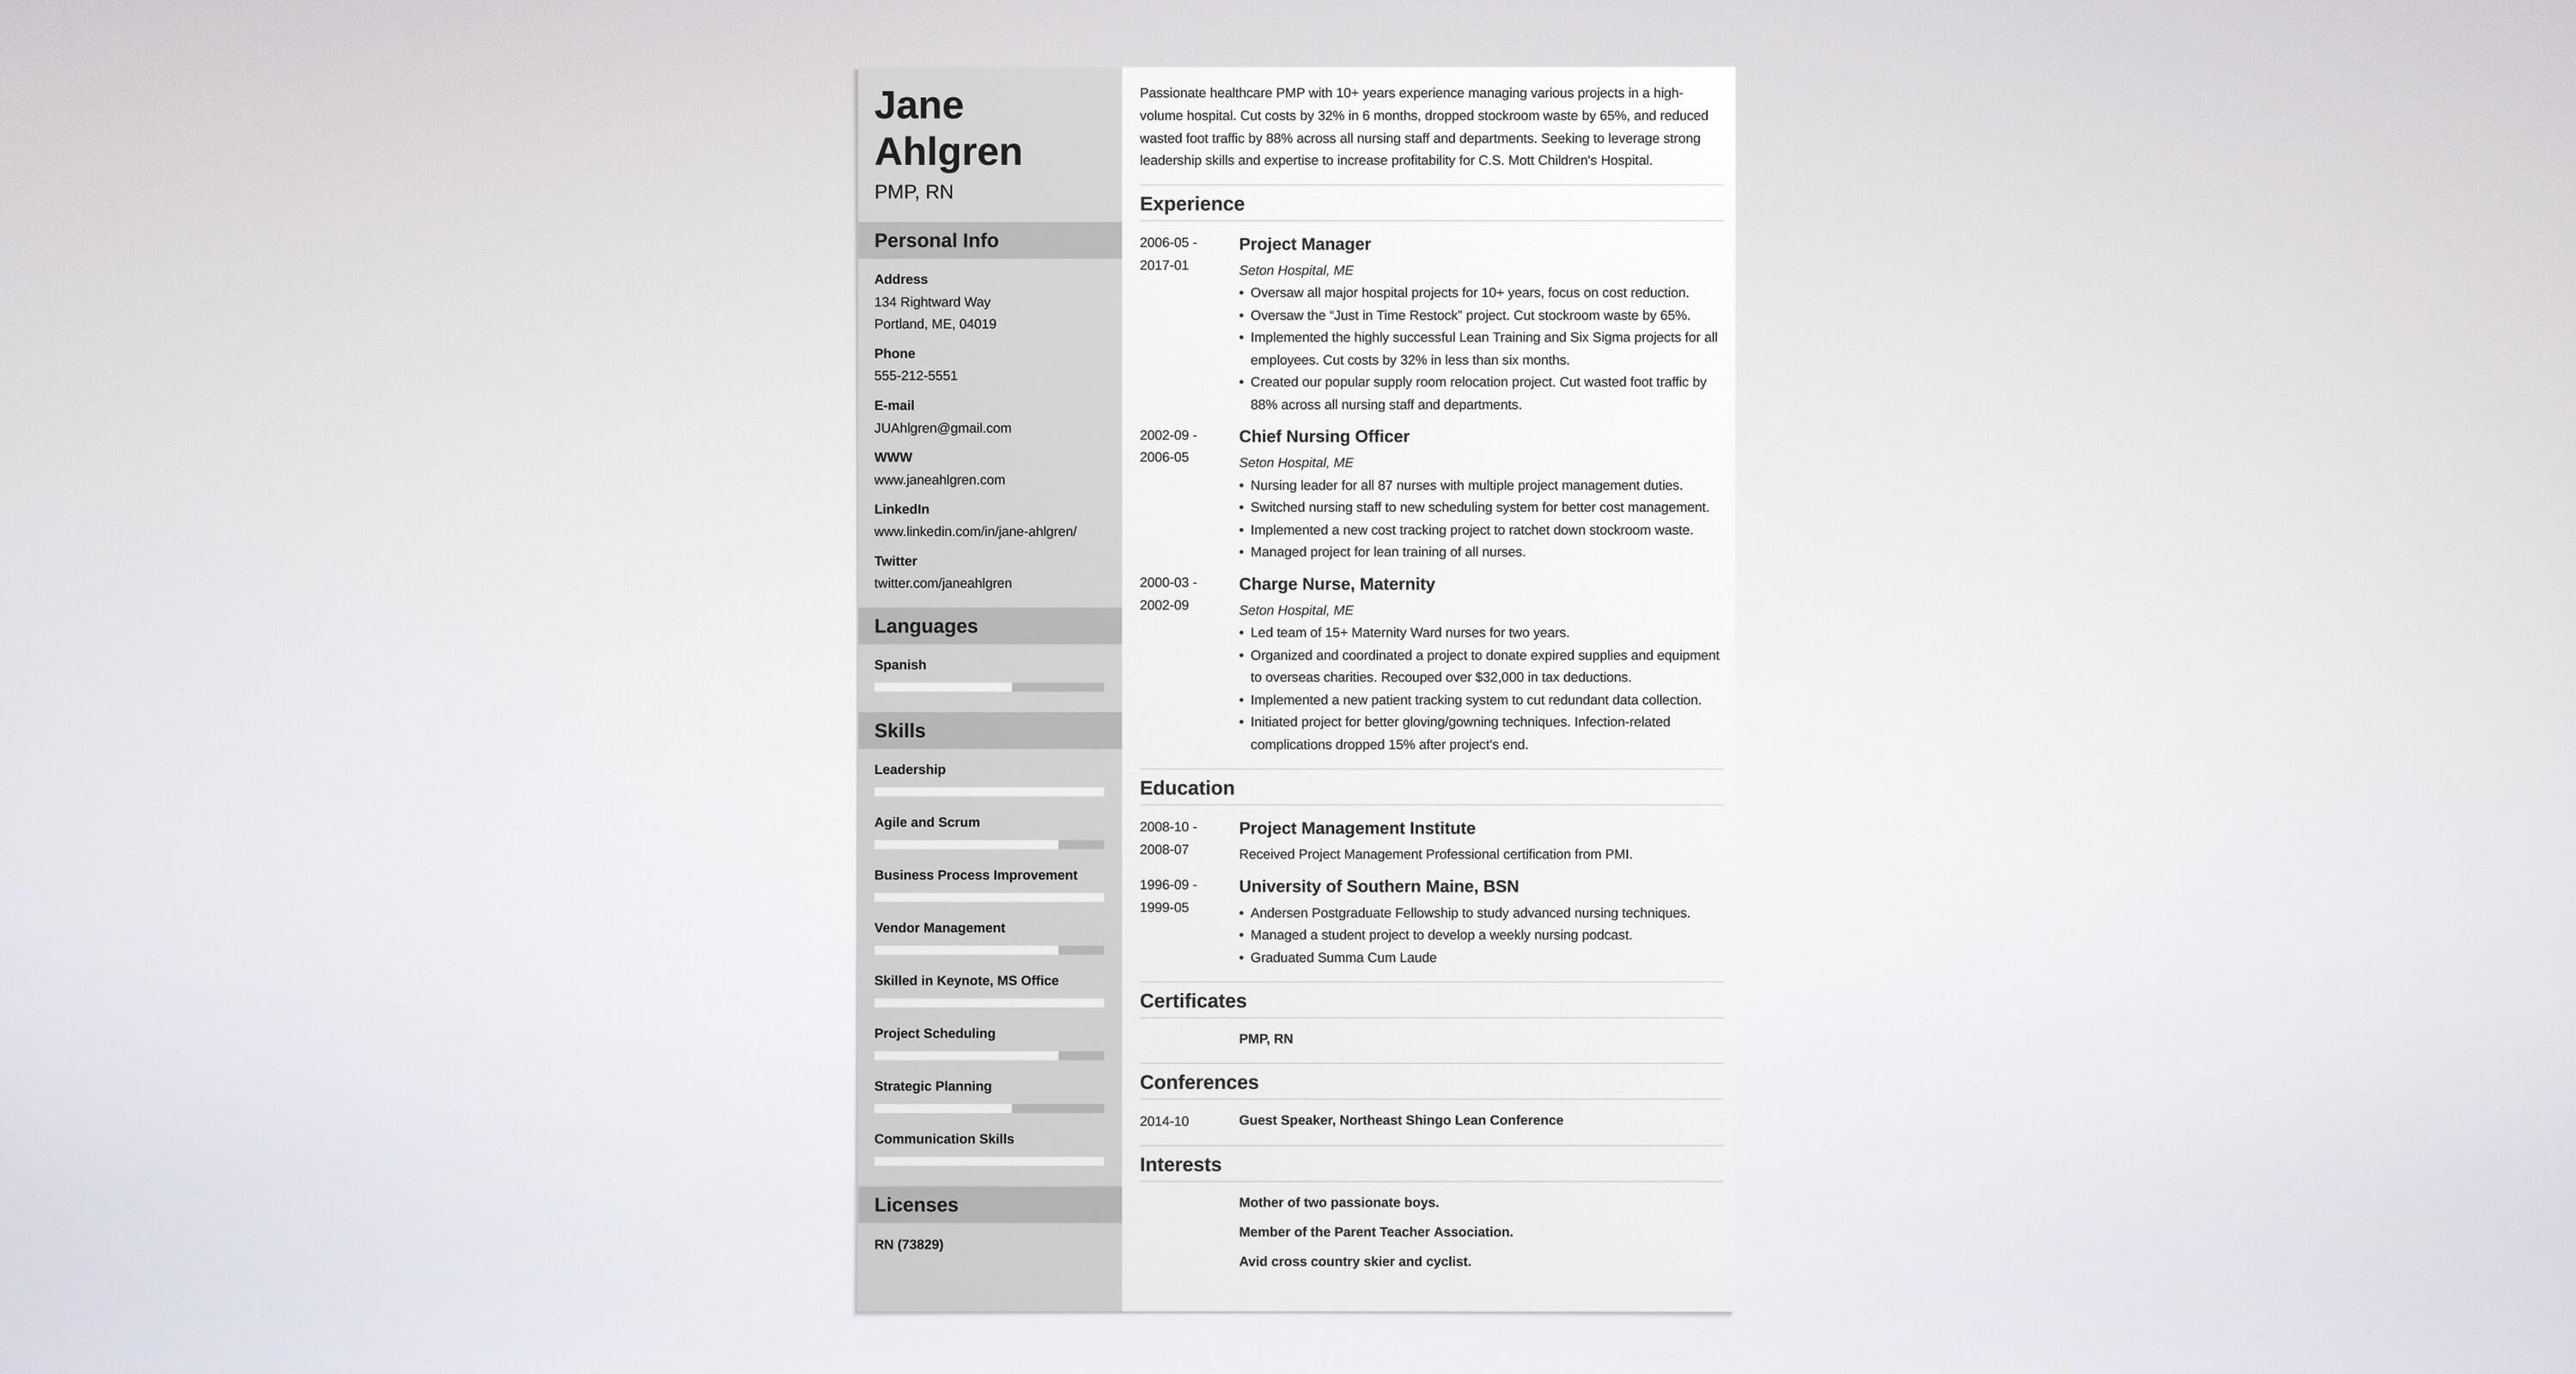 project manager resume sample complete guide 20 examples. Resume Example. Resume CV Cover Letter